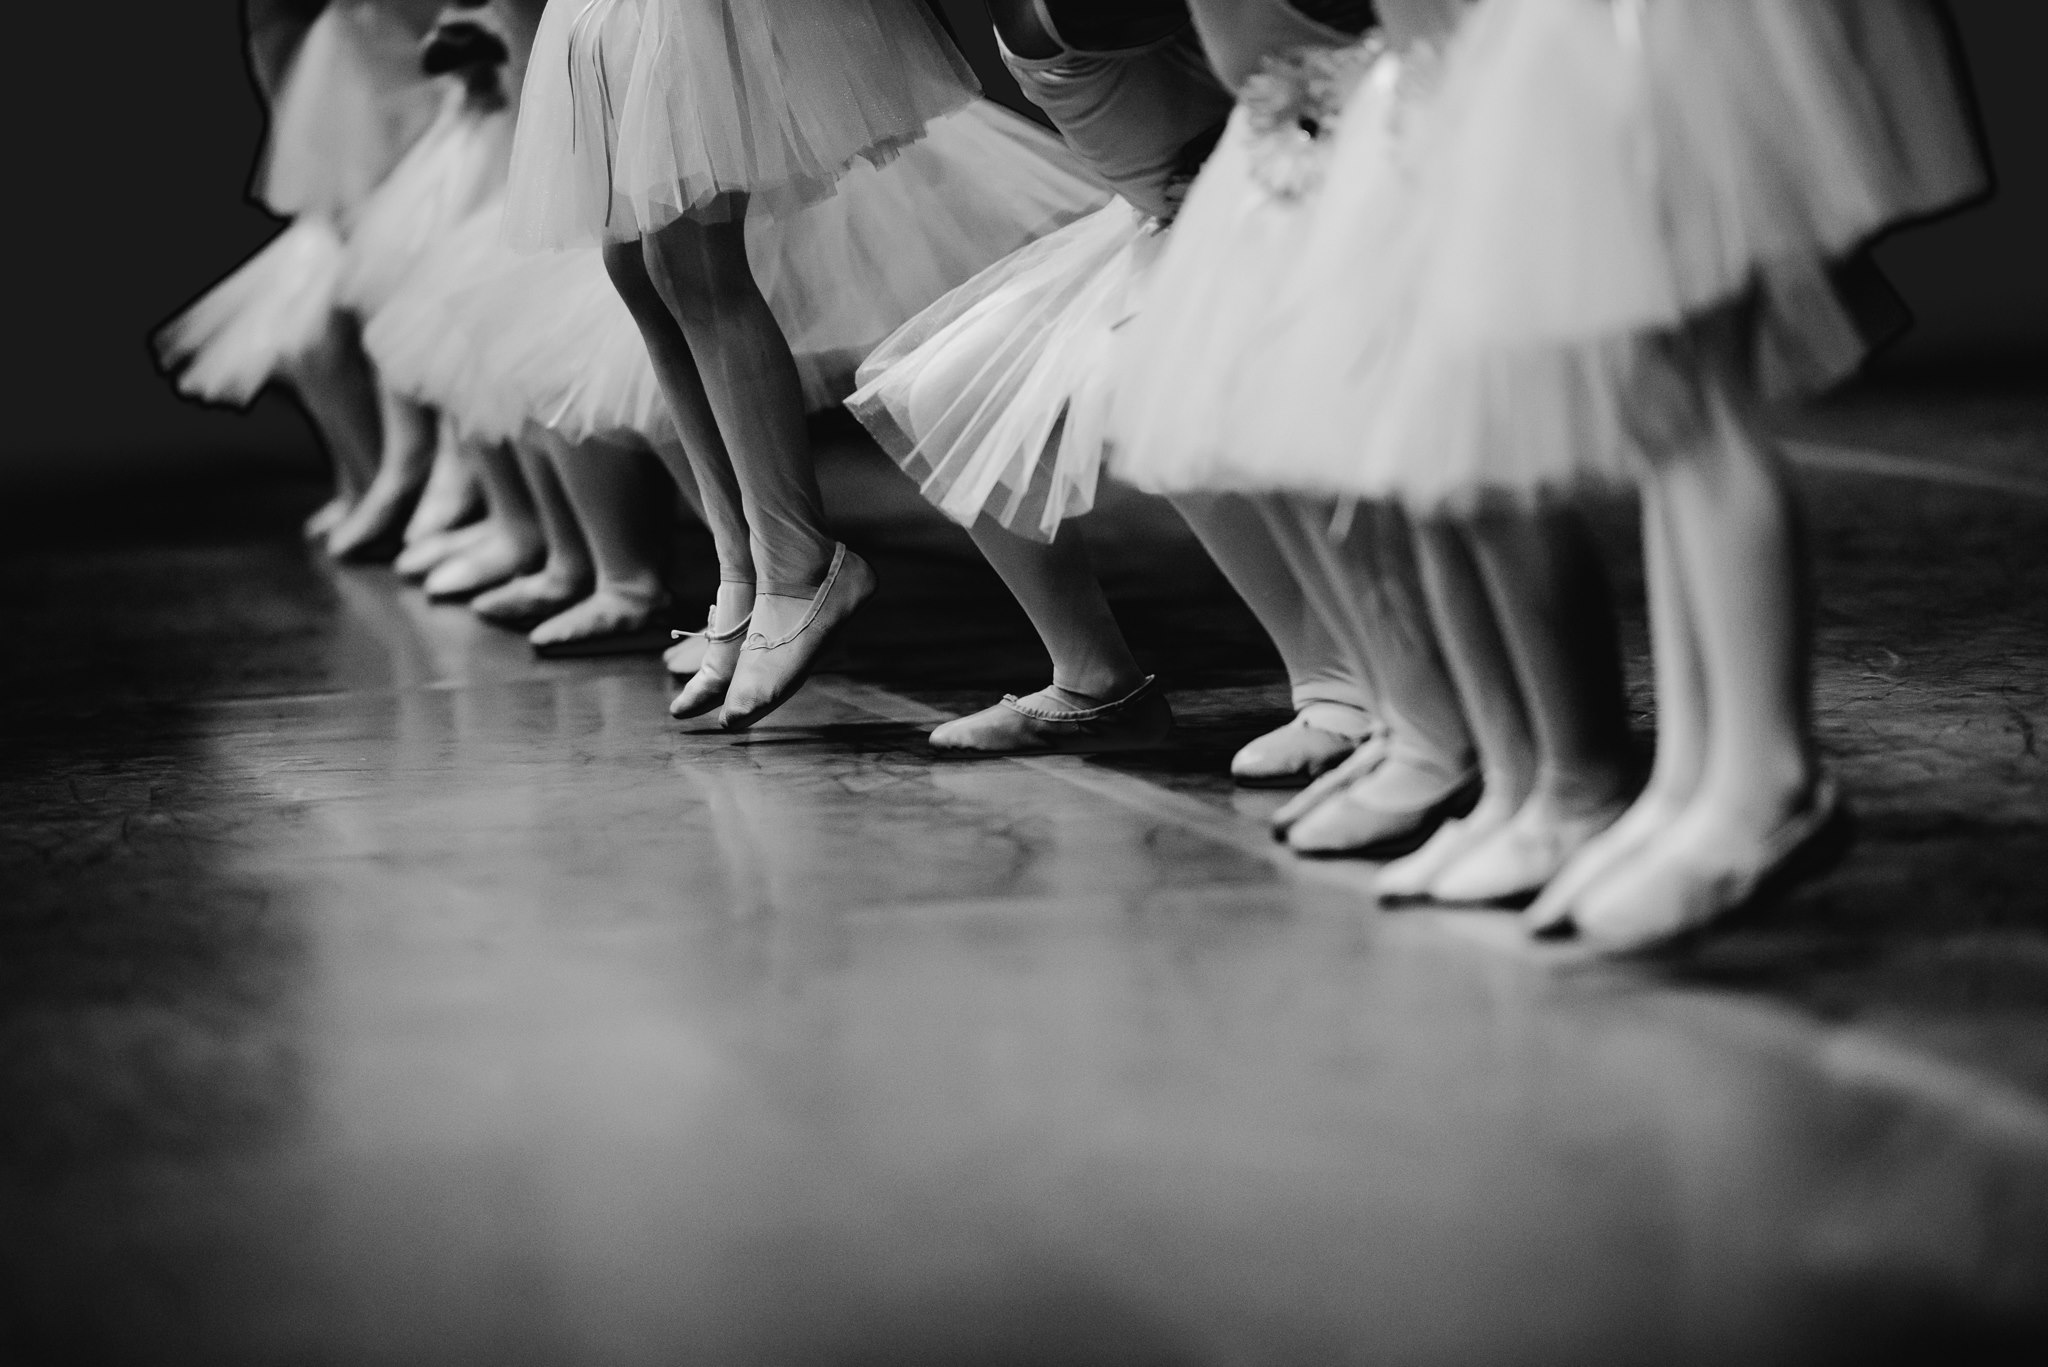 ballerinas, the daily story